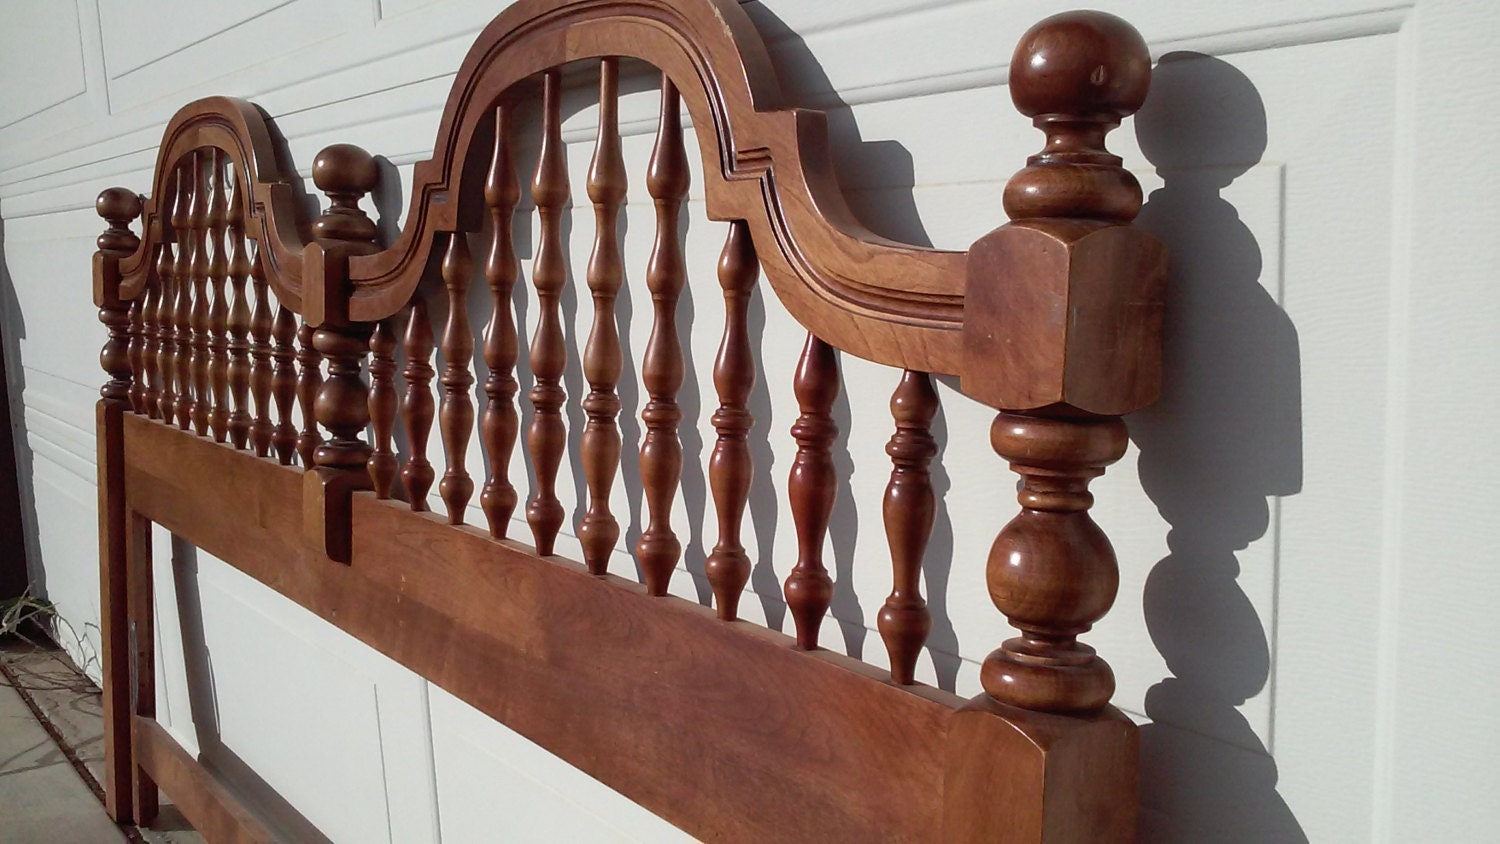 King Headboard Wood Spindles And Knobs Round By Bloomnblossom